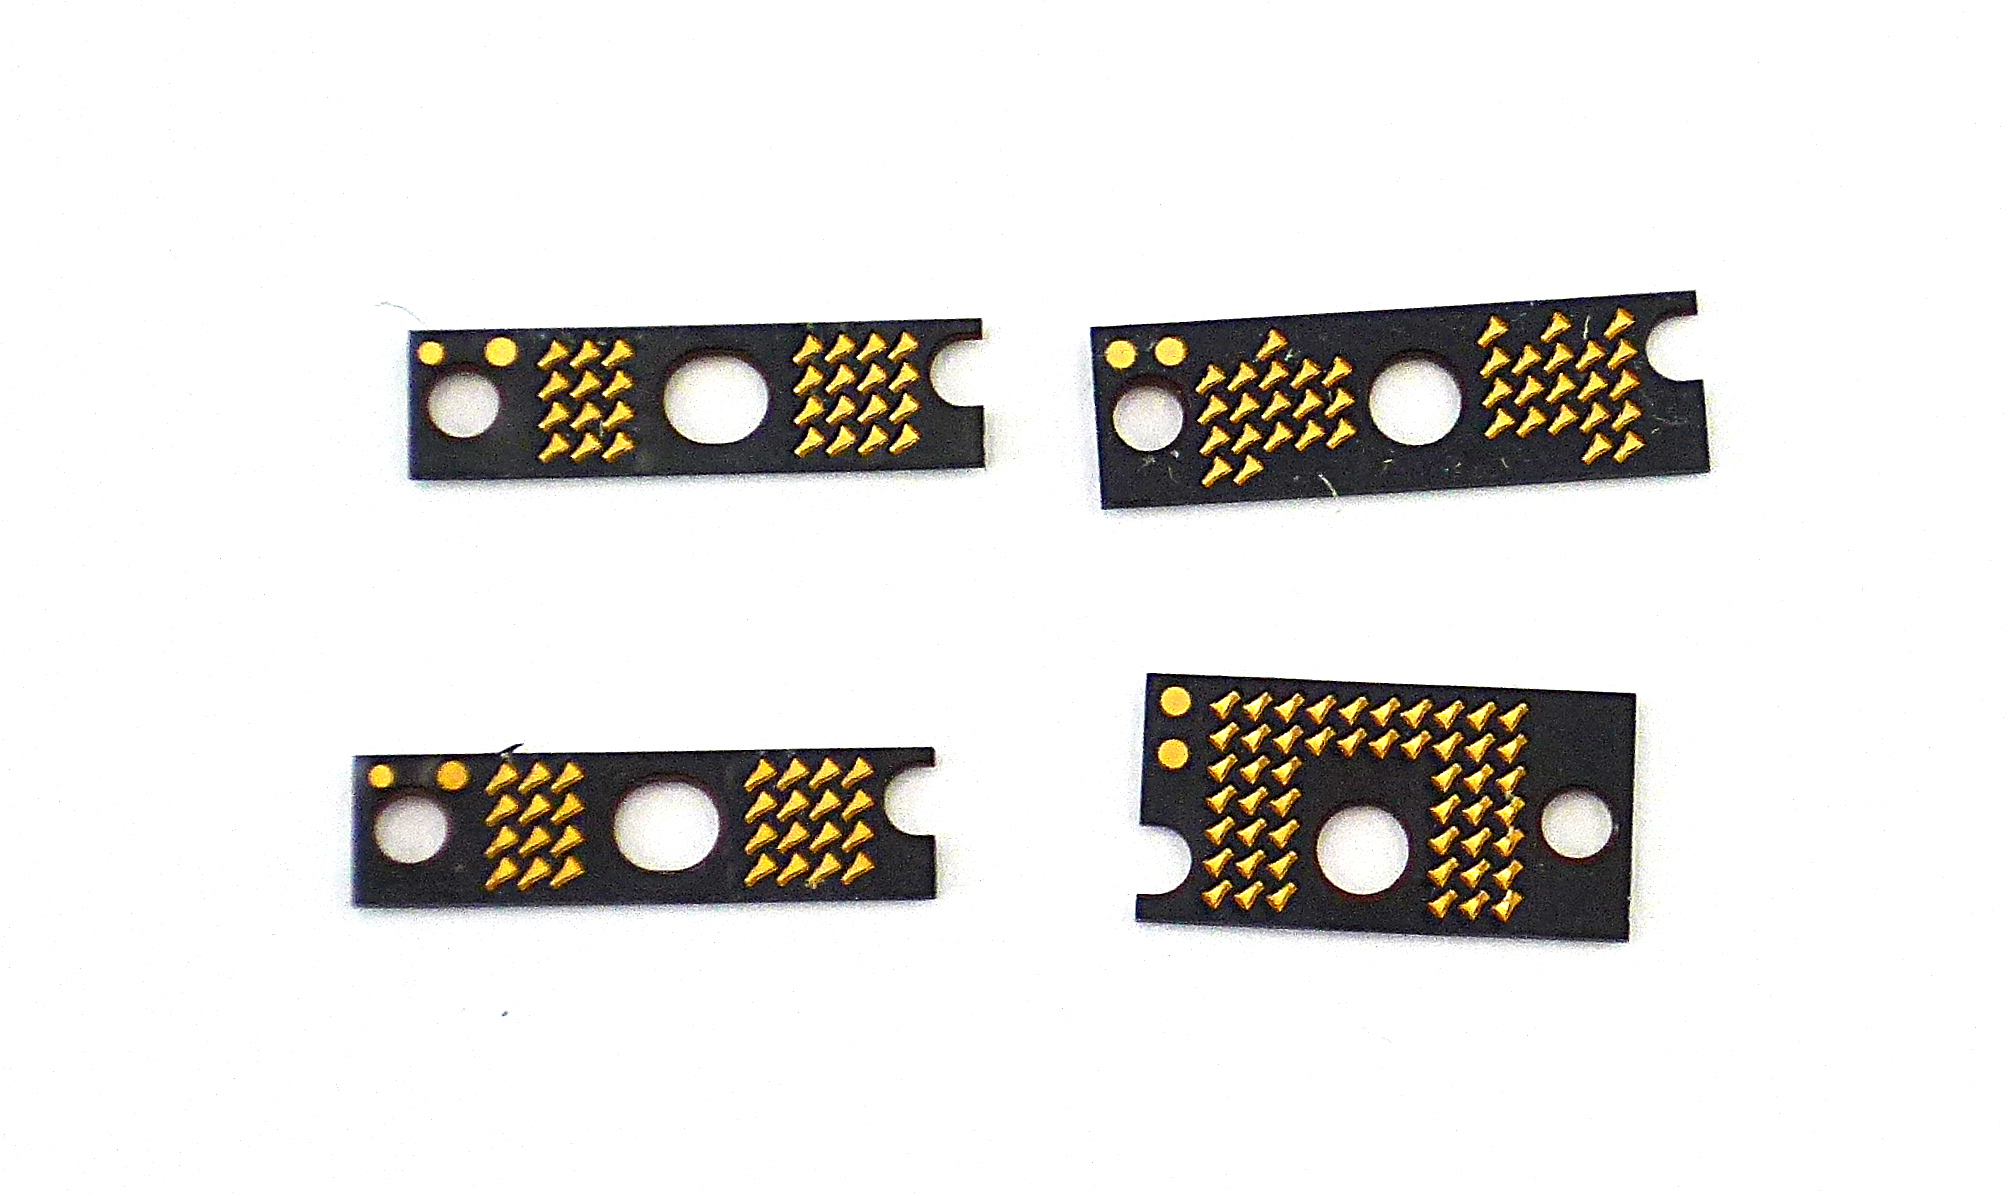 Microsoft Surface Pro 3 - 1631 PCB Contact Board Complete Set of 4